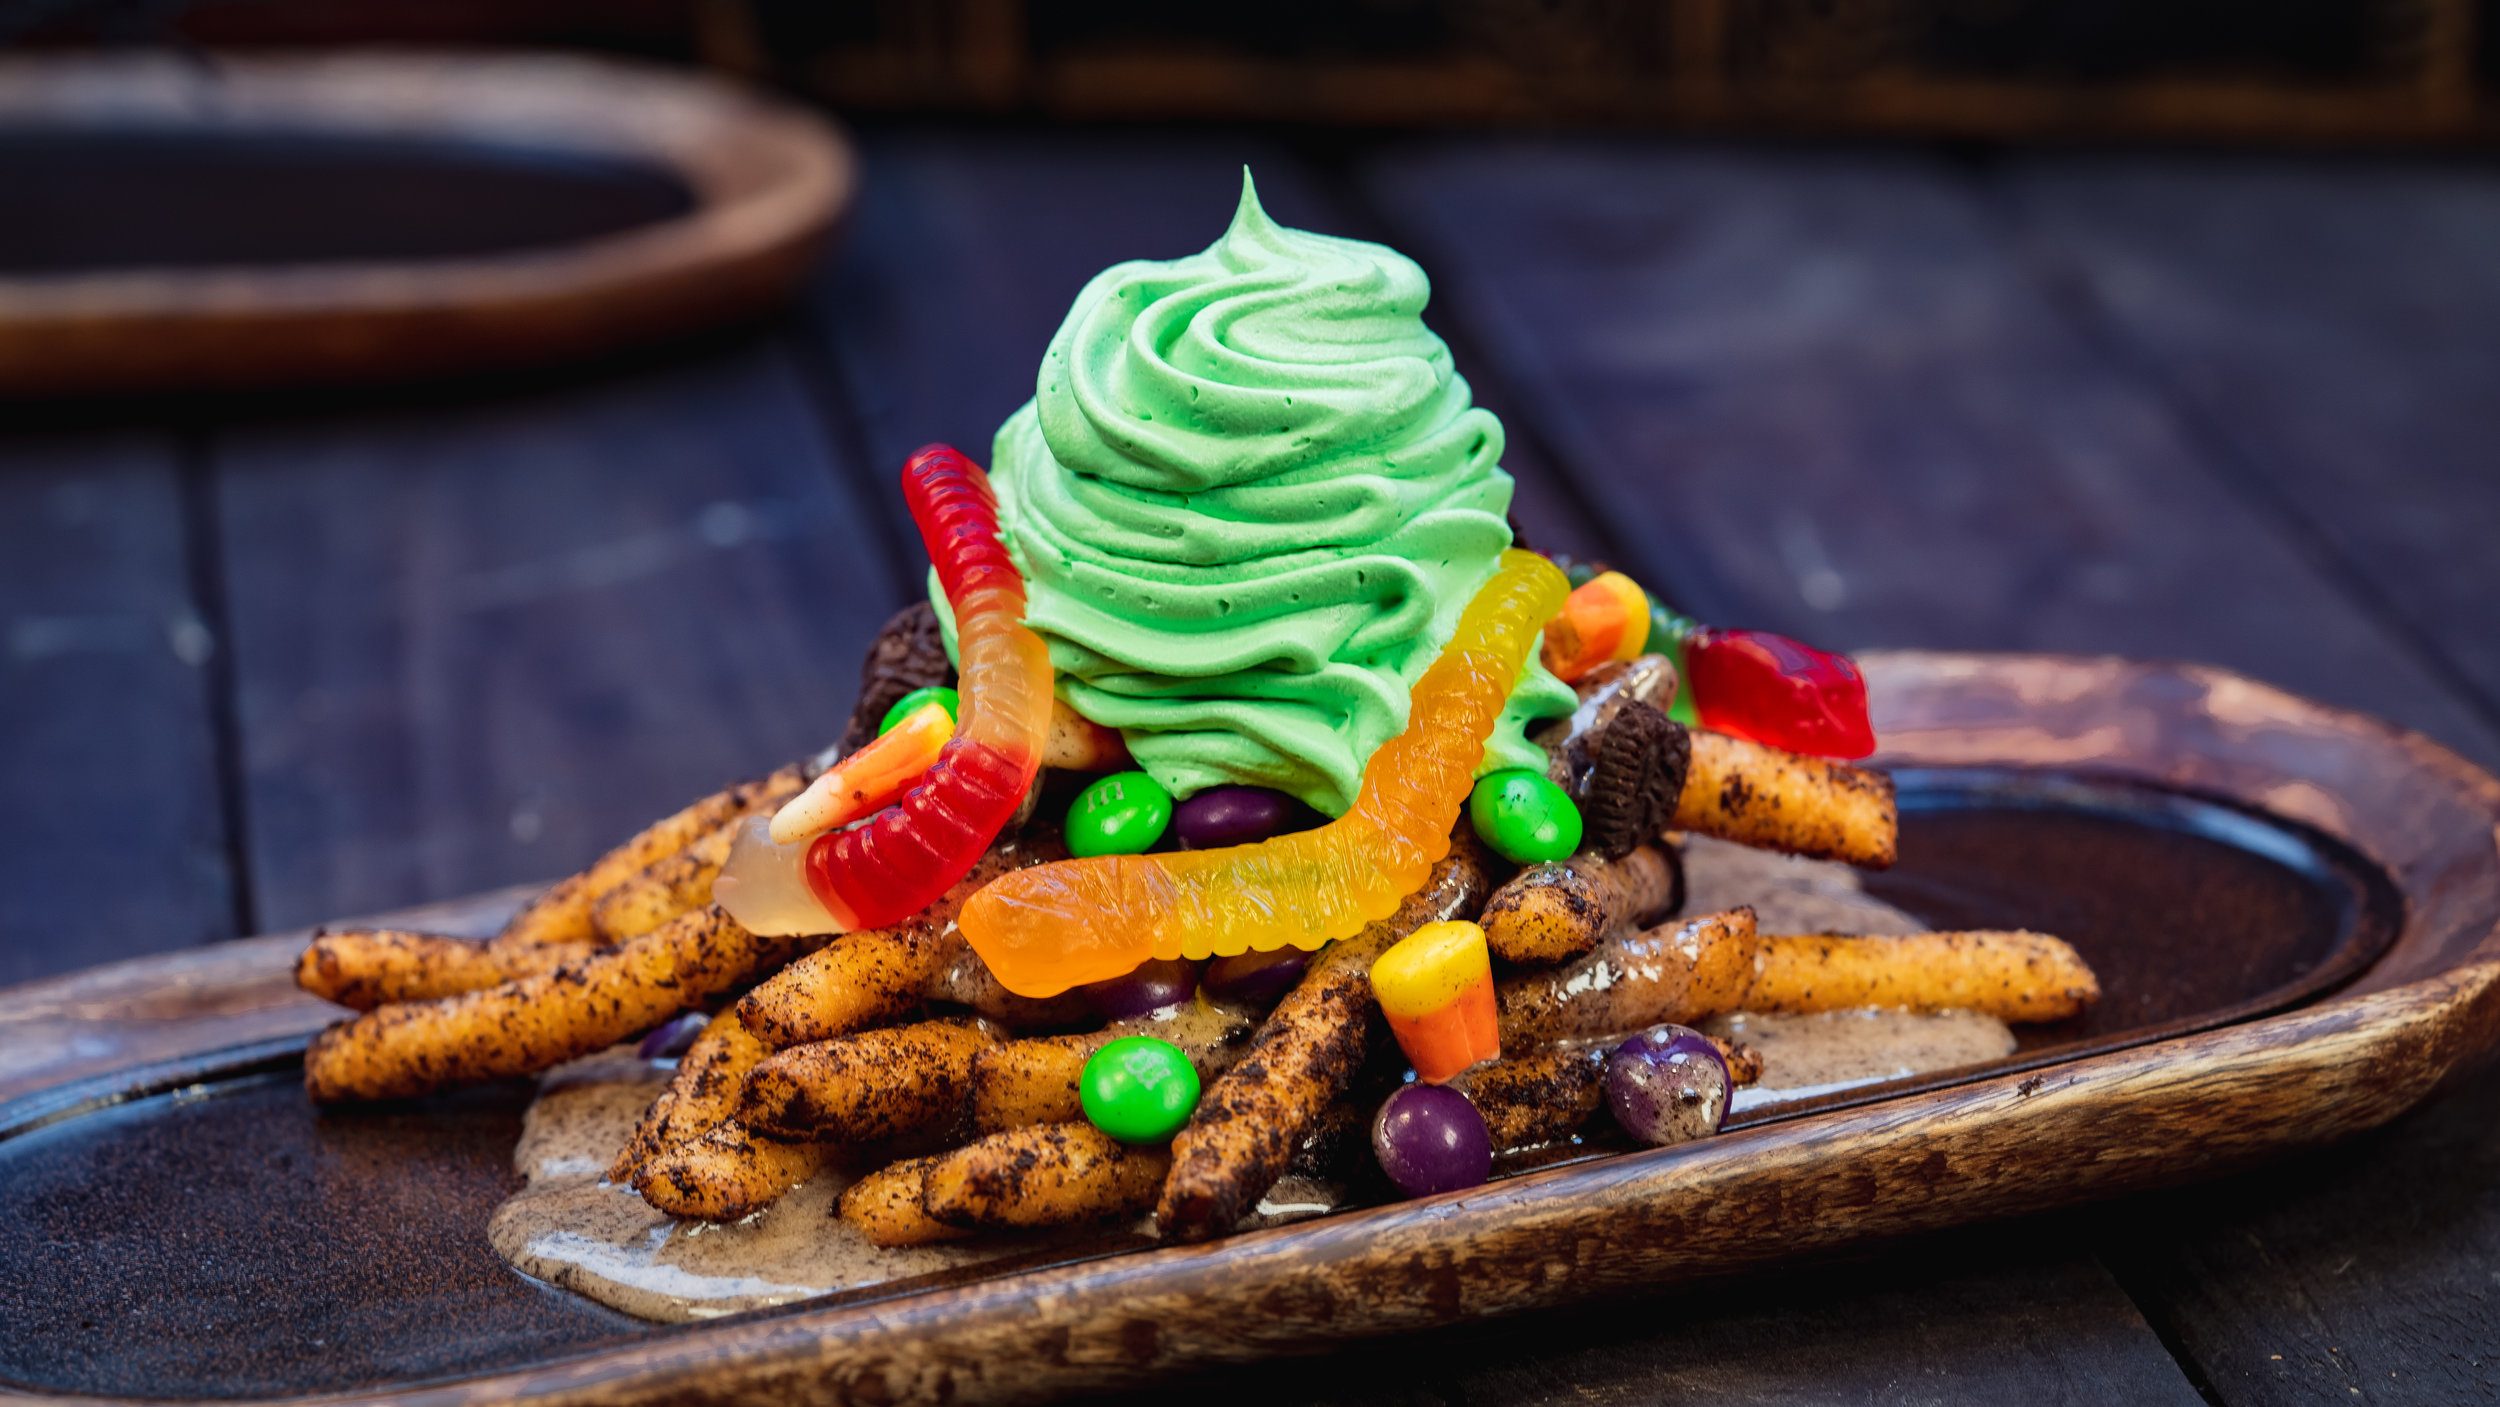 Disney guests will discover a variety of delicious treats during Halloween Time at Disneyland Resort, from Sept. 6 through Oct. 31, 2019. At Award Wieners at Disney California Adventure Park, guests will find these Oogie Boogie-inspired funnel cake fries dusted in crushed chocolate cream cookies, topped with cream cheese sauce, chocolate cream cookie pieces, gummy candies, chocolate coated candies and whipped cream. (David Nguyen/Disneyland Resort)